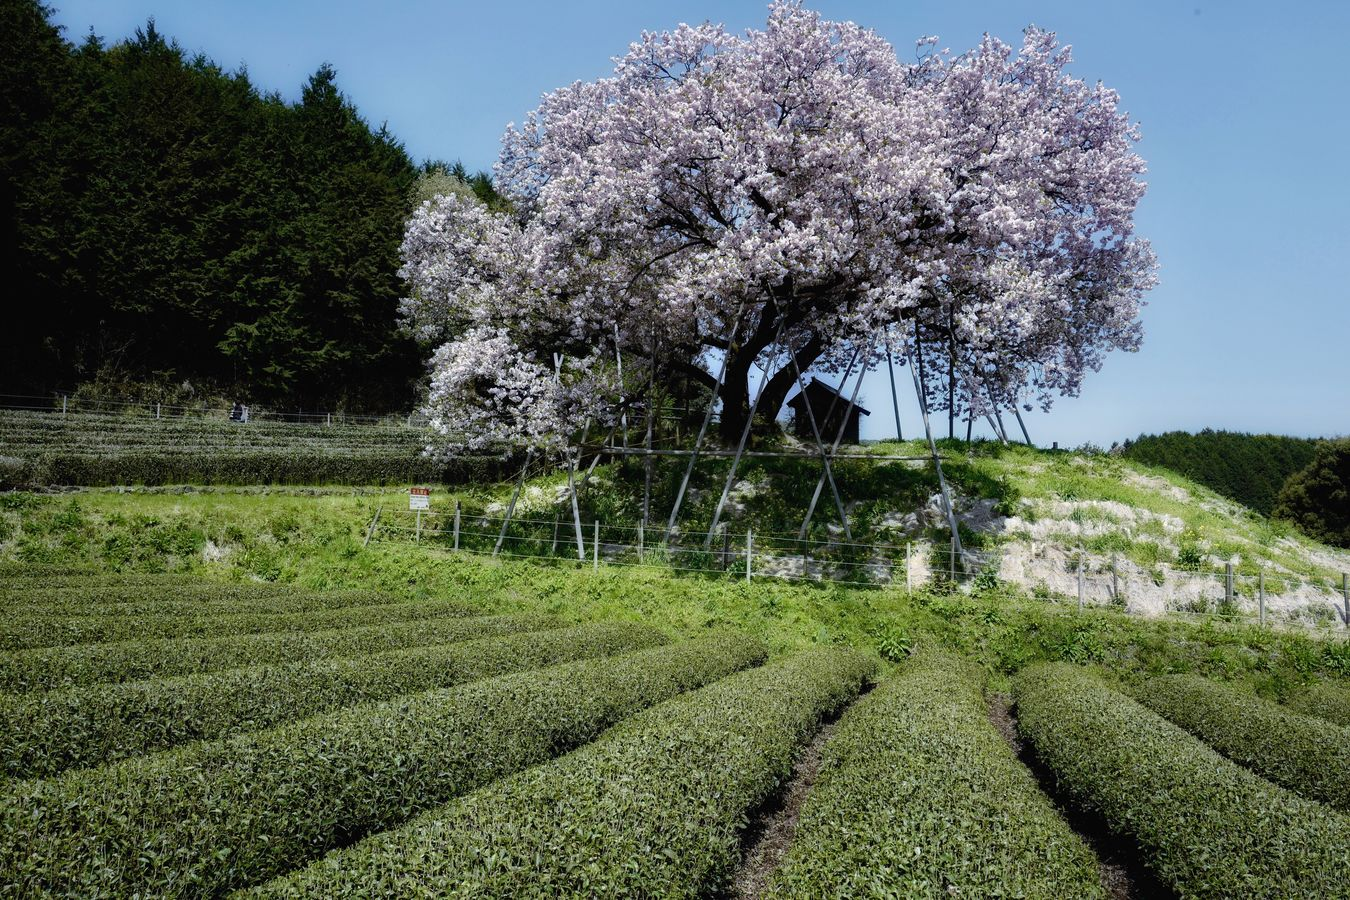 Agricultural Note Alternative : Hyakunen Sakura ( 100 years Cherry Blossoms Growth Tree ) in the Japanese Green Tea Plantation  Today's Hot Look Today Weather Report Beauty In Nature Agriculture ASIA Nandoryo Ureshino Saga,Japan 佐賀県 嬉野 納戸料の百年桜 Landscape_photography Japan Photography